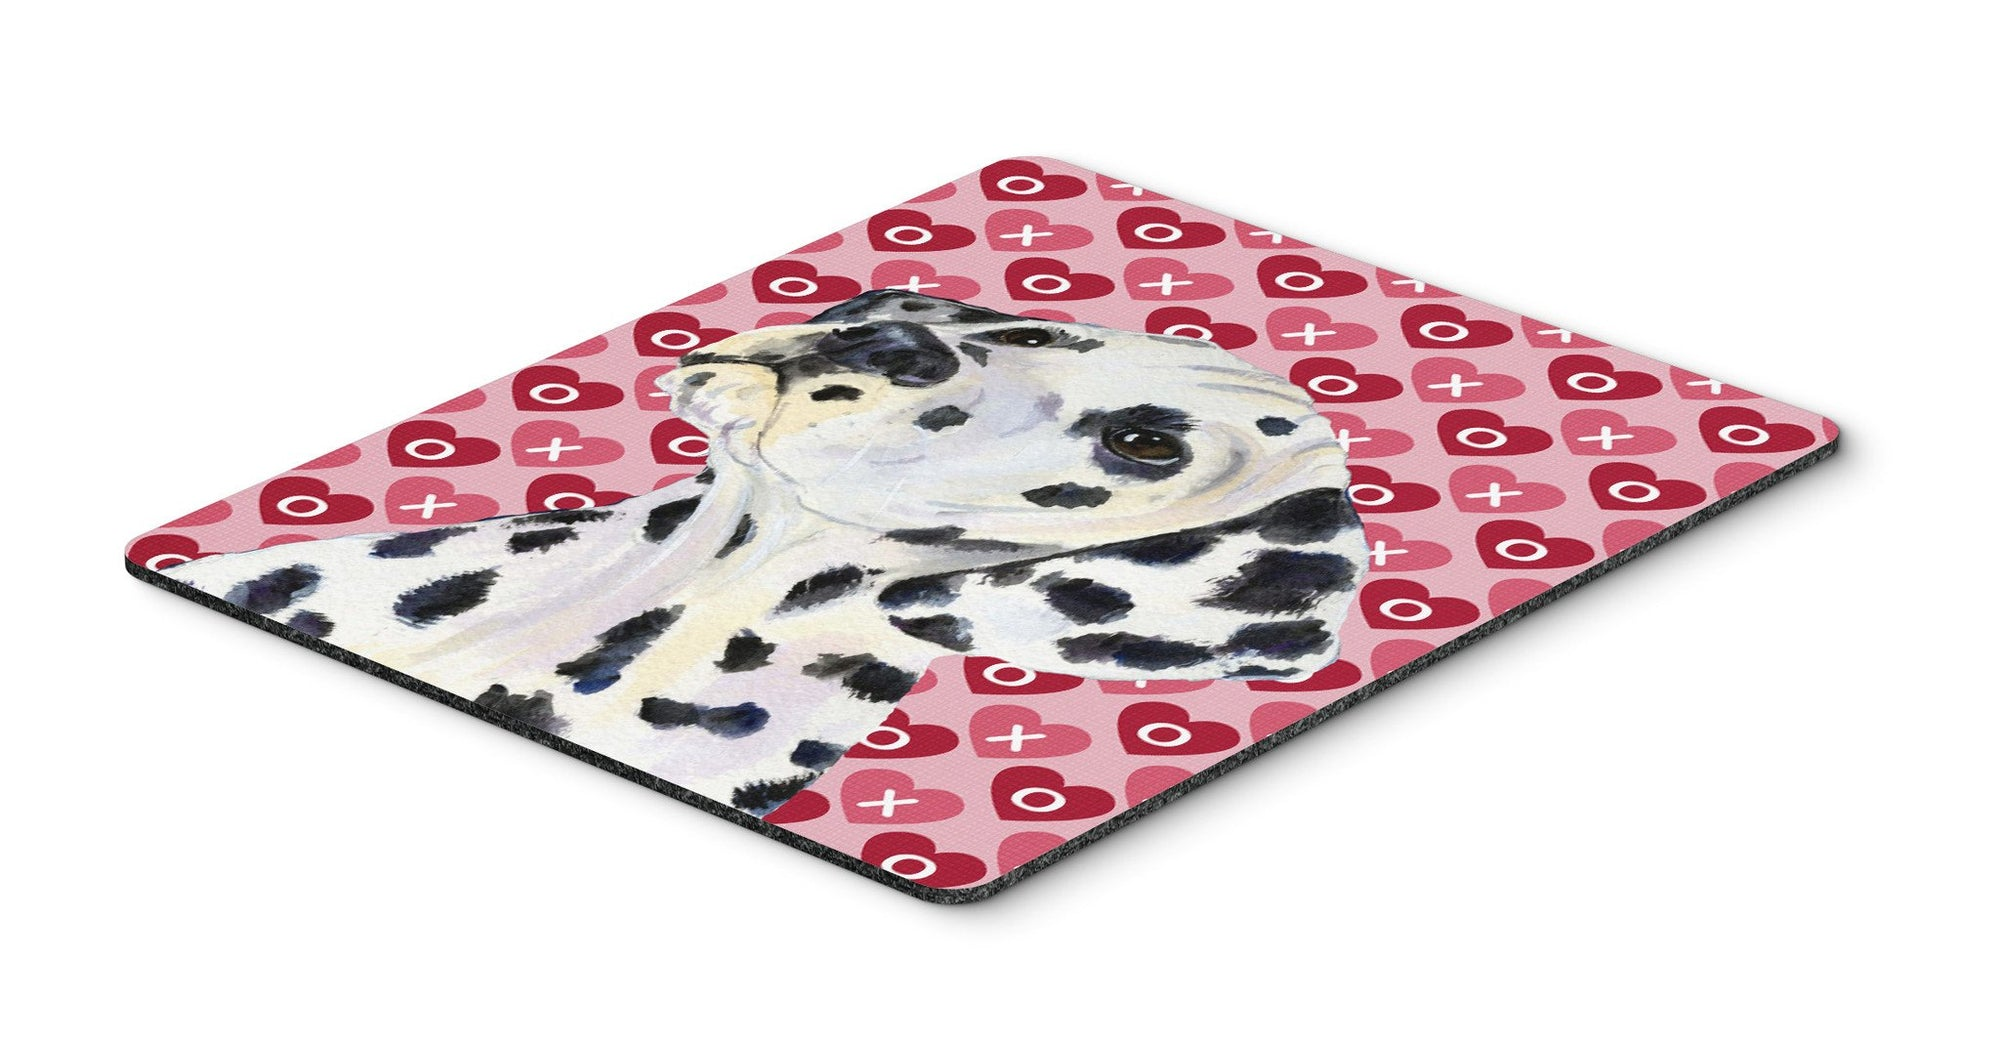 Dalmatian Hearts Love and Valentine's Day Portrait Mouse Pad, Hot Pad or Trivet by Caroline's Treasures